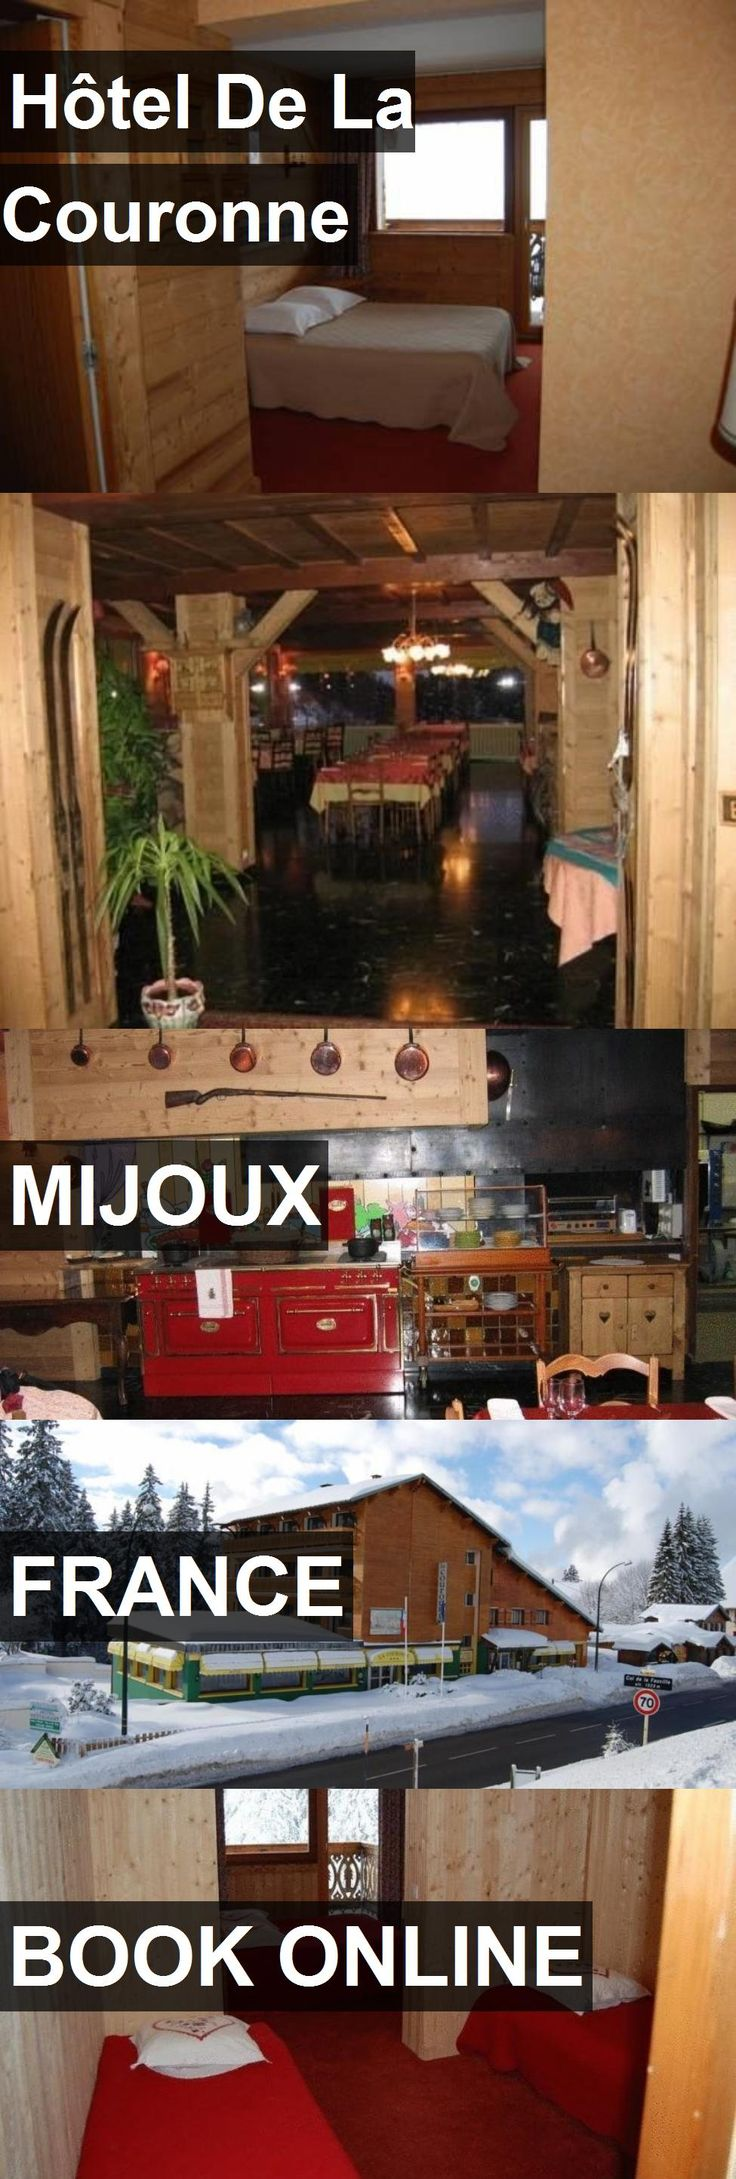 Hotel Hôtel De La Couronne in Mijoux, France. For more information, photos, reviews and best prices please follow the link. #France #Mijoux #travel #vacation #hotel